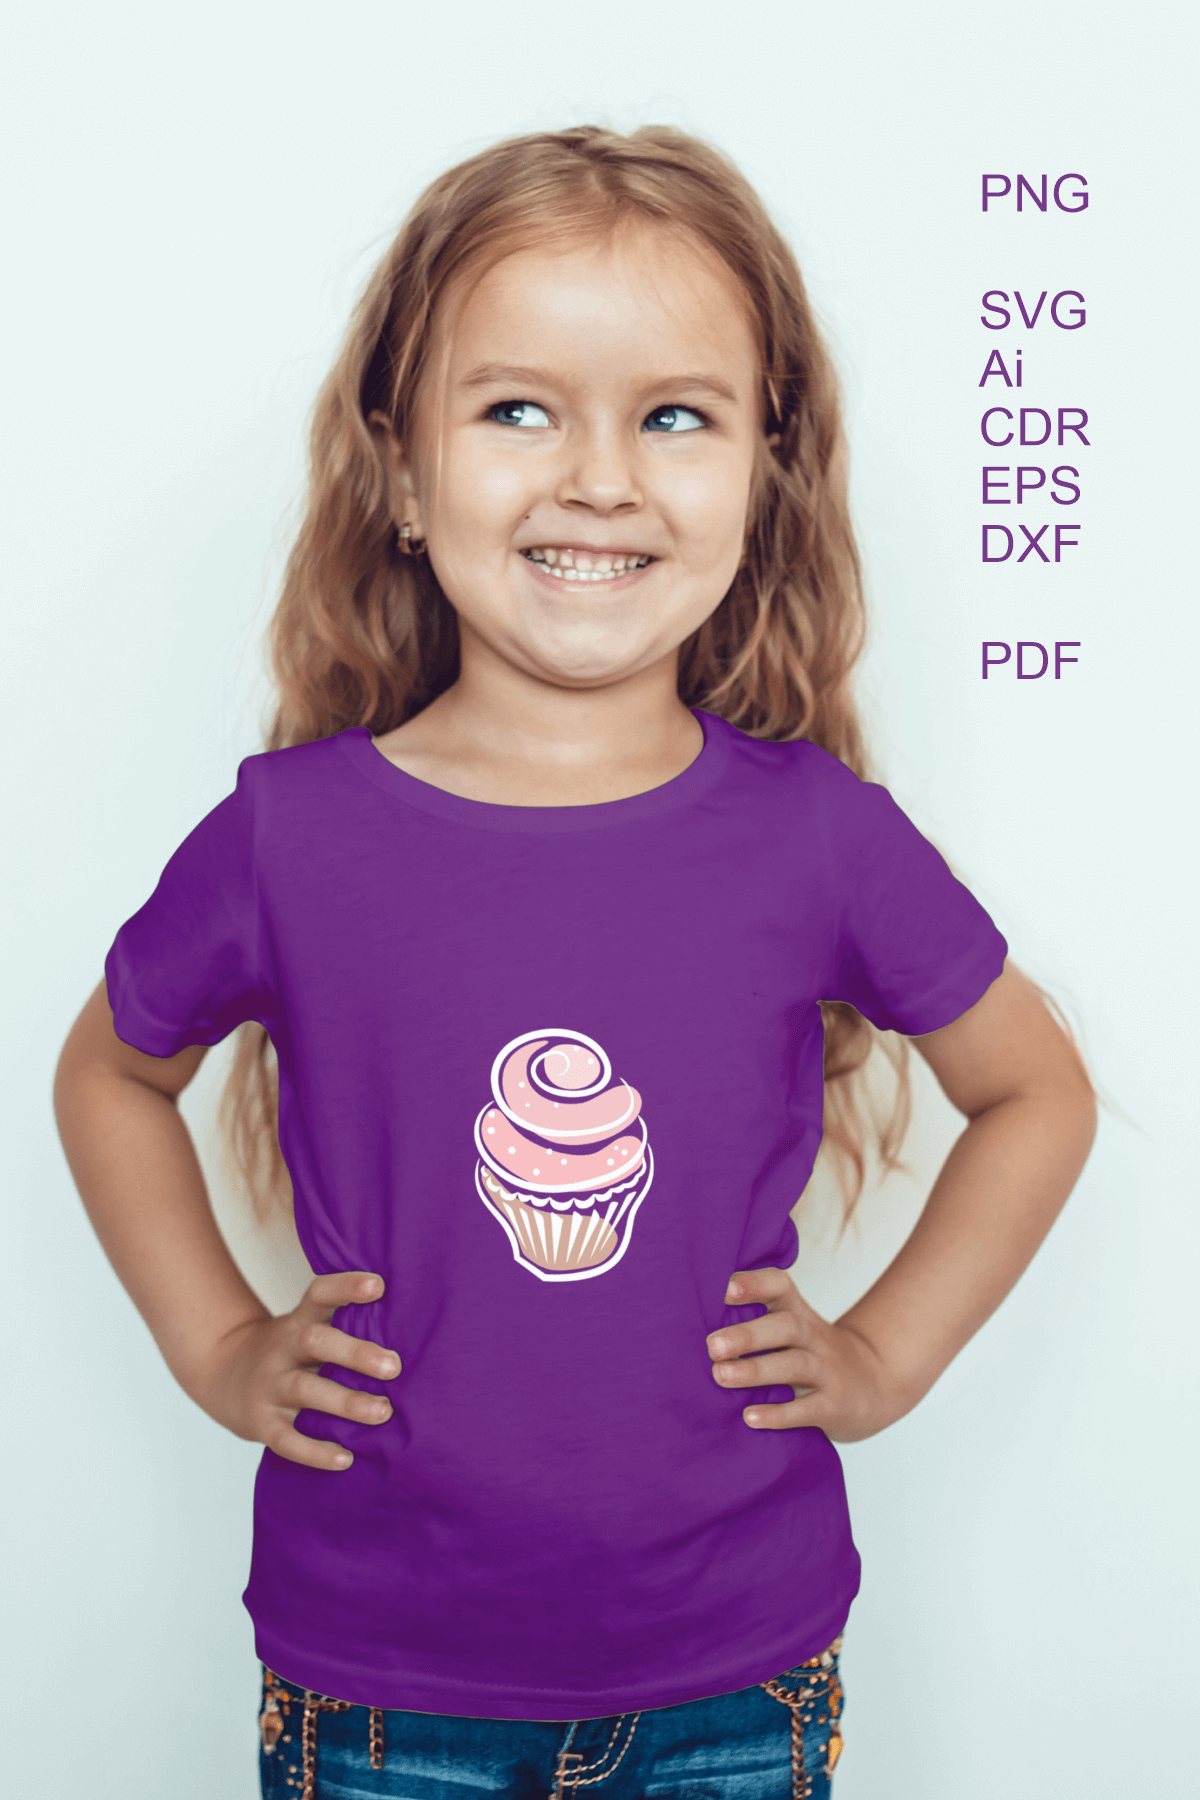 Cupcakes Clipart SVG PDF AI DXF for Crafts and Stationery example image 3